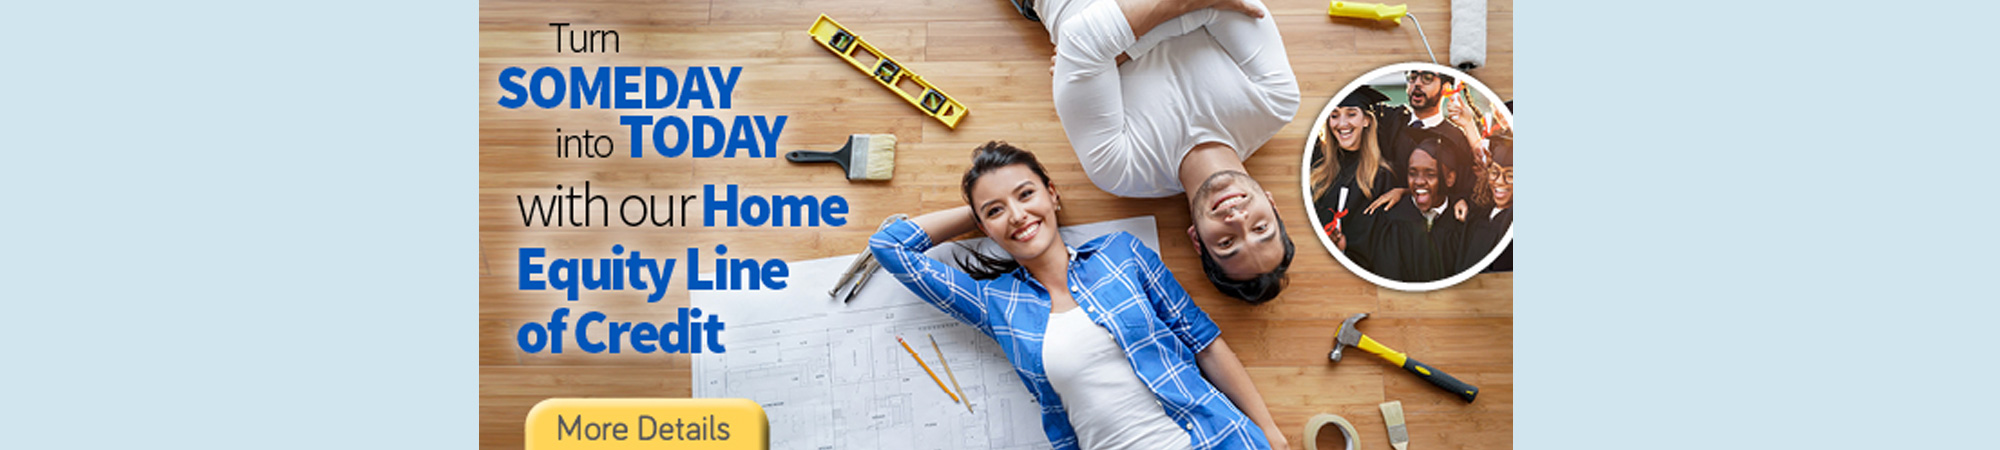 Turn someday into today  with our Home Equity Line of Credit